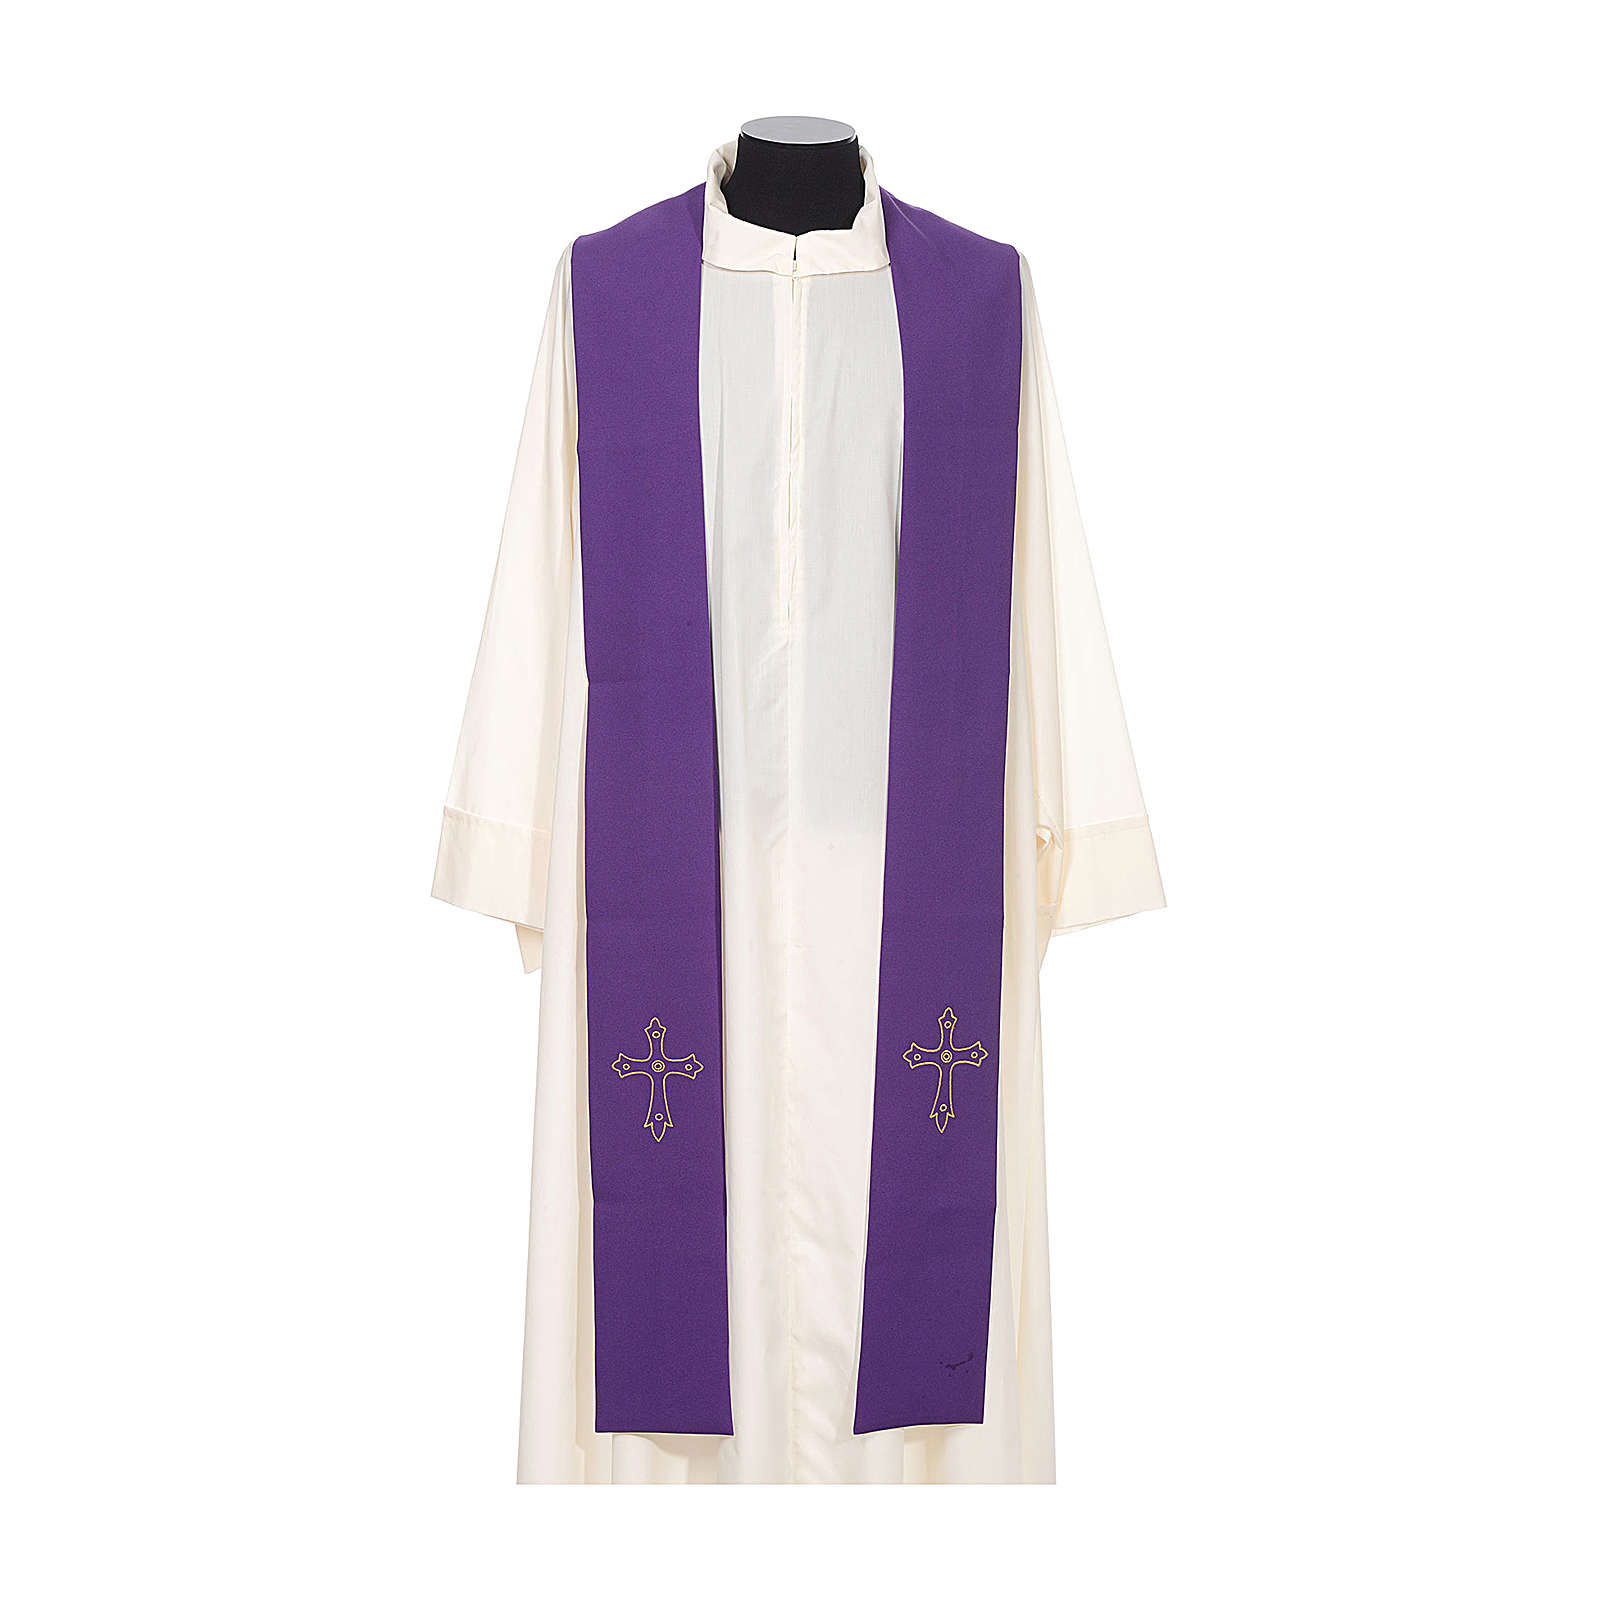 Priest Stole with gold cross embroidered on both panels 4